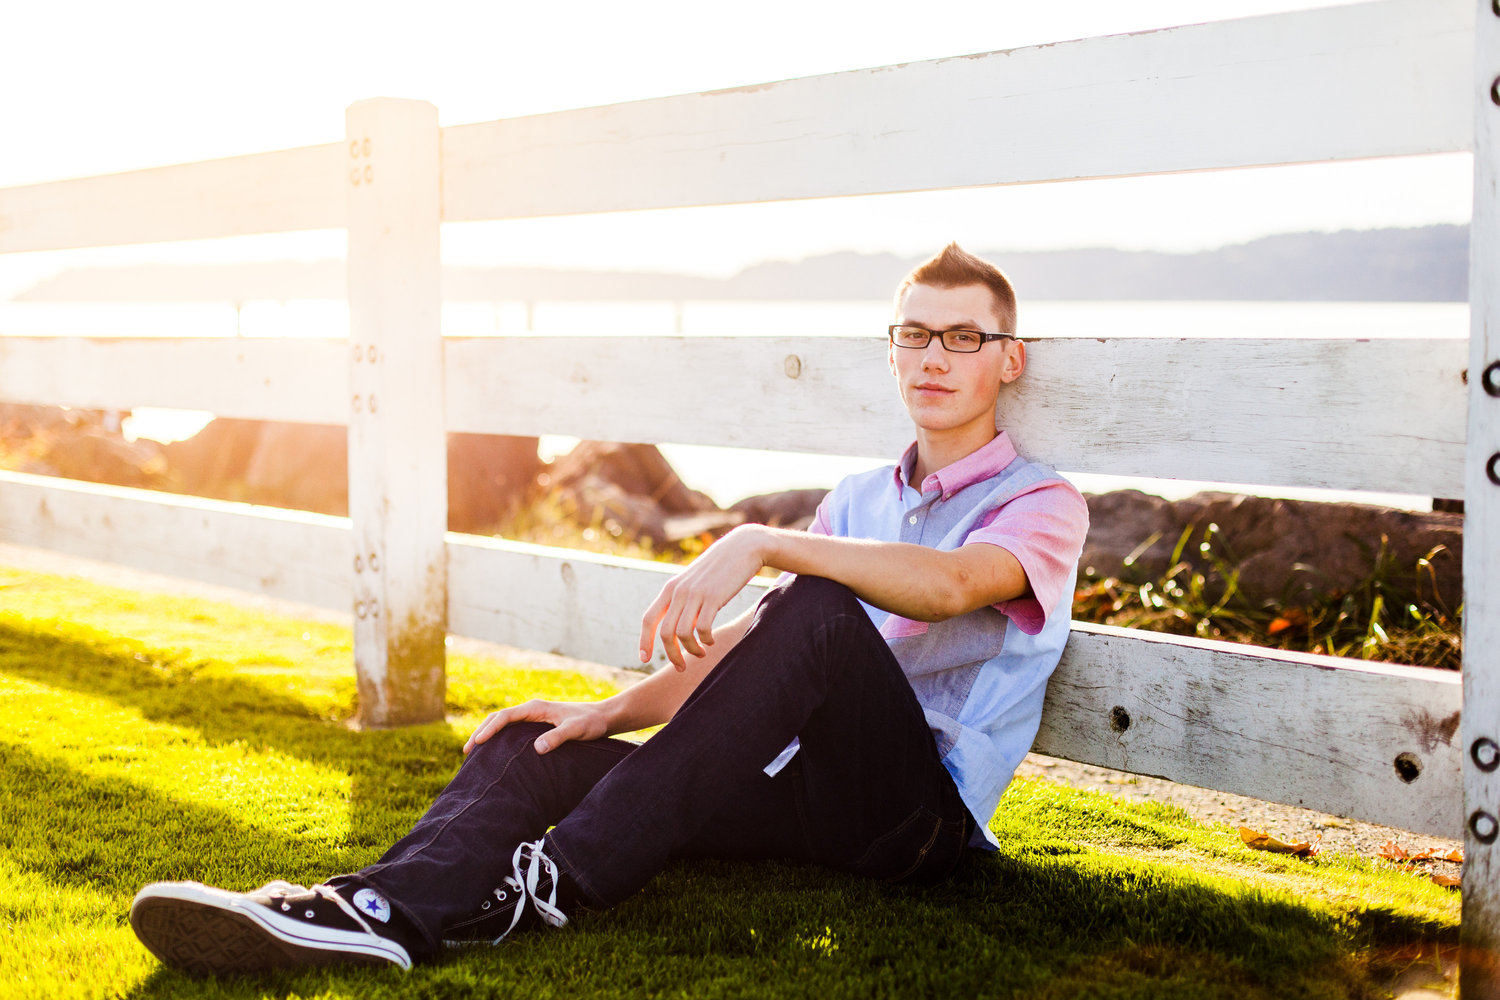 boys-Senior-portraits-seattle-spencer-wallace-photography-mukilteo.jpg